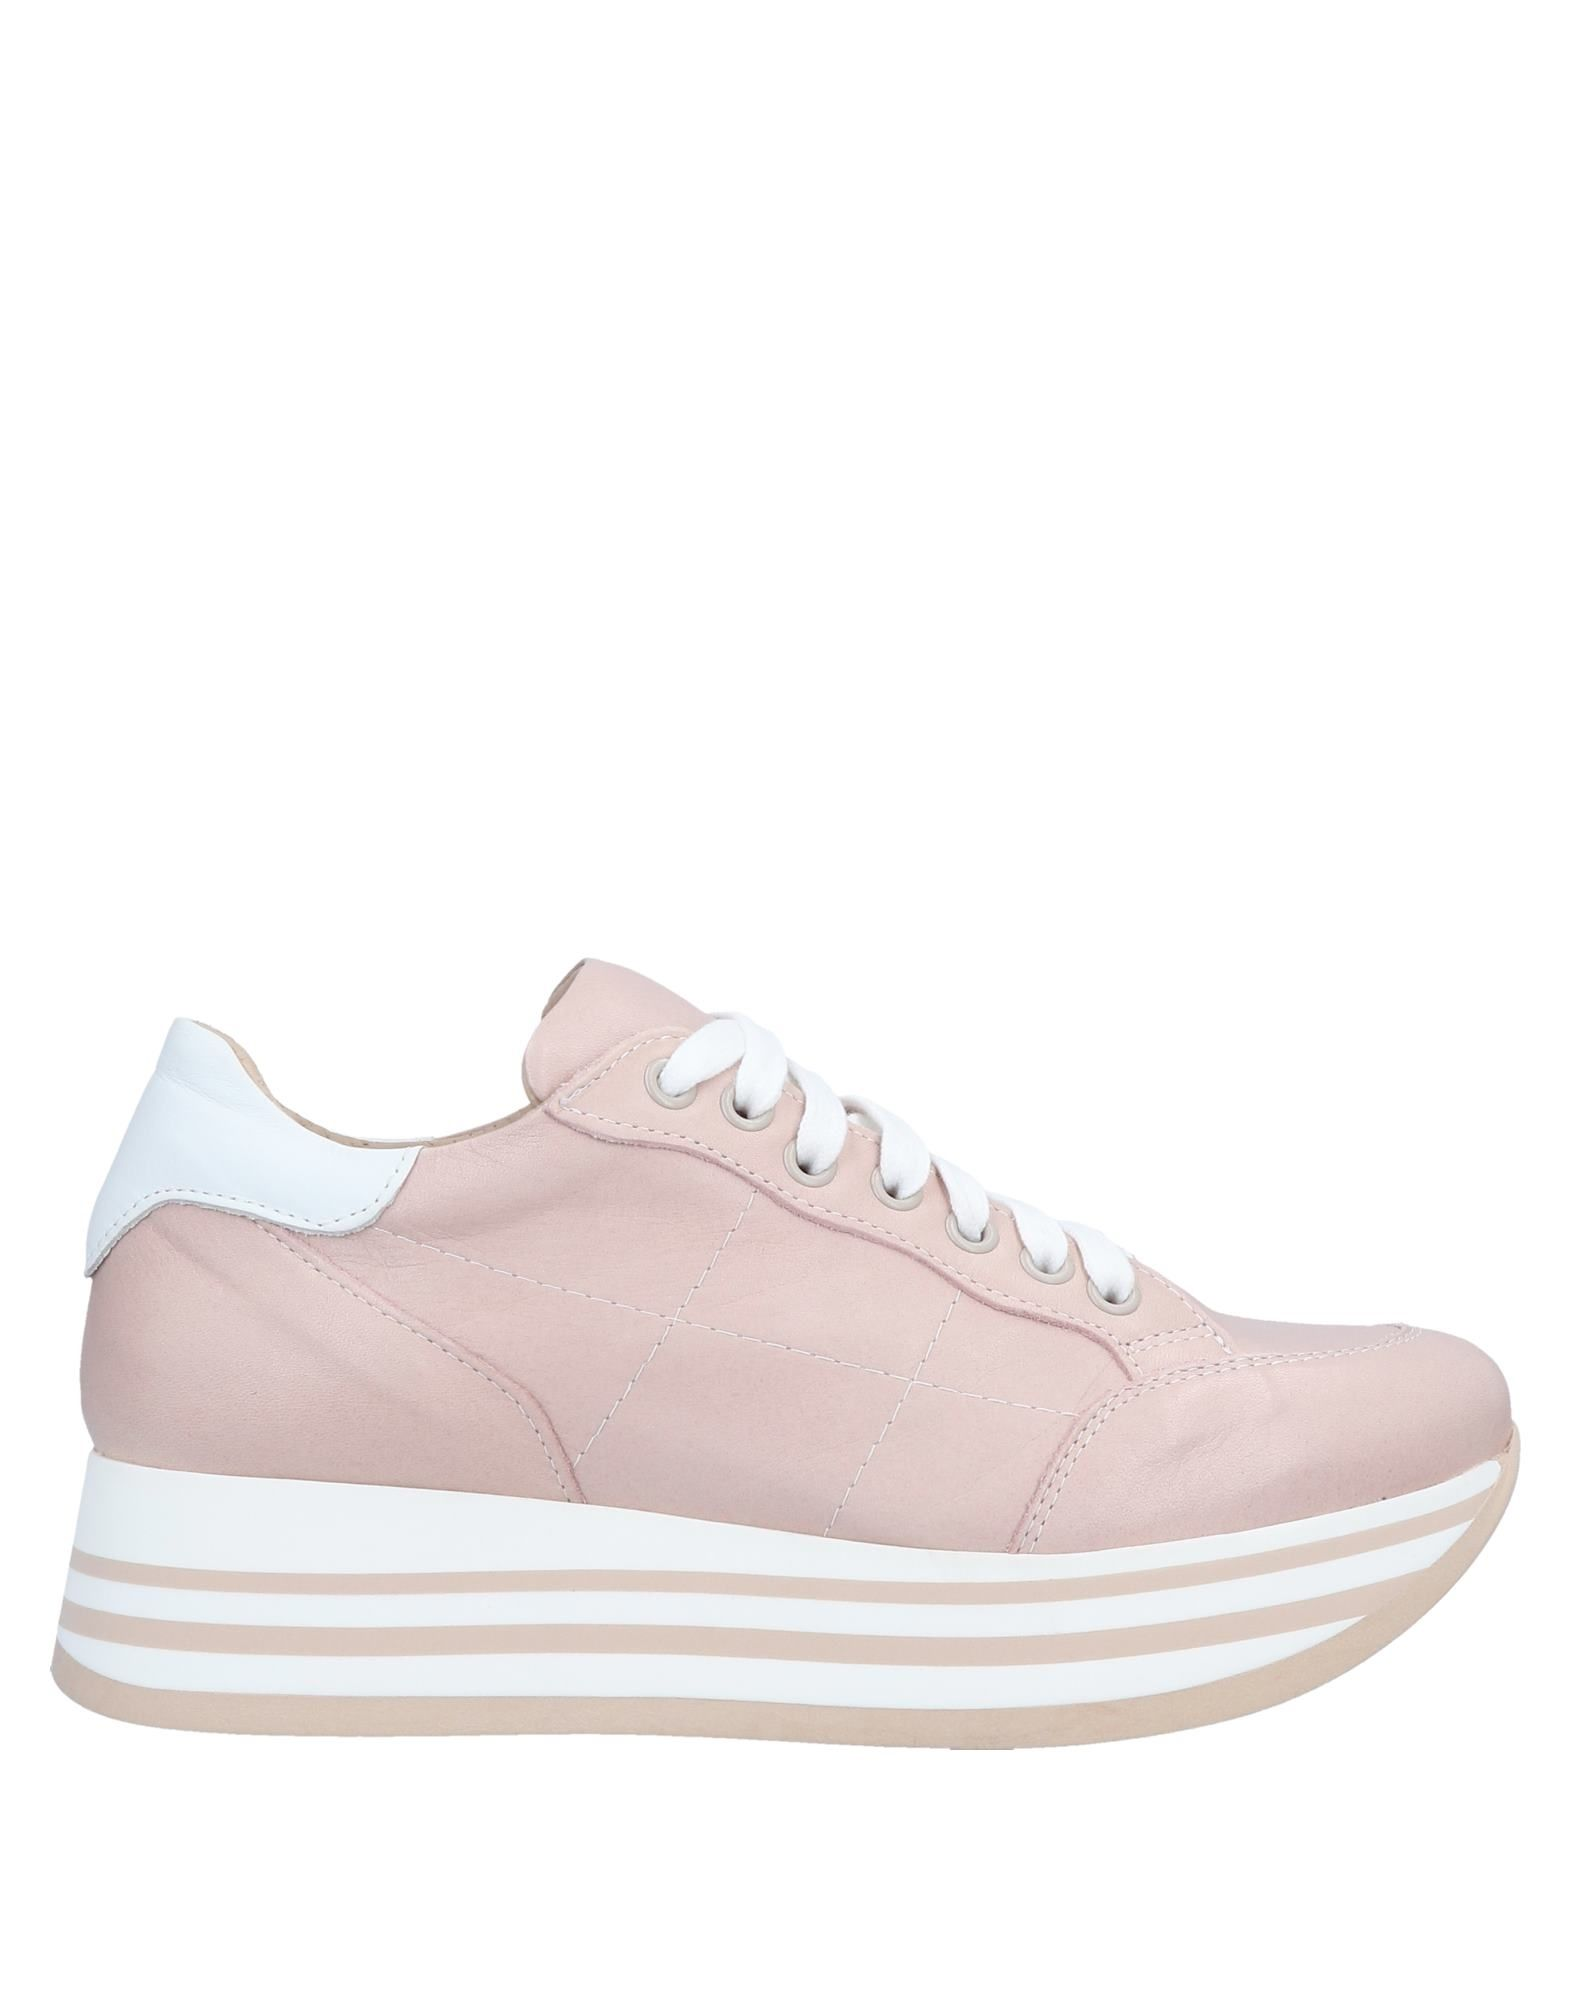 Loretta Pettinari Sneakers - Women Loretta Pettinari Sneakers - online on  Canada - Sneakers 11564892HK 58cd5e